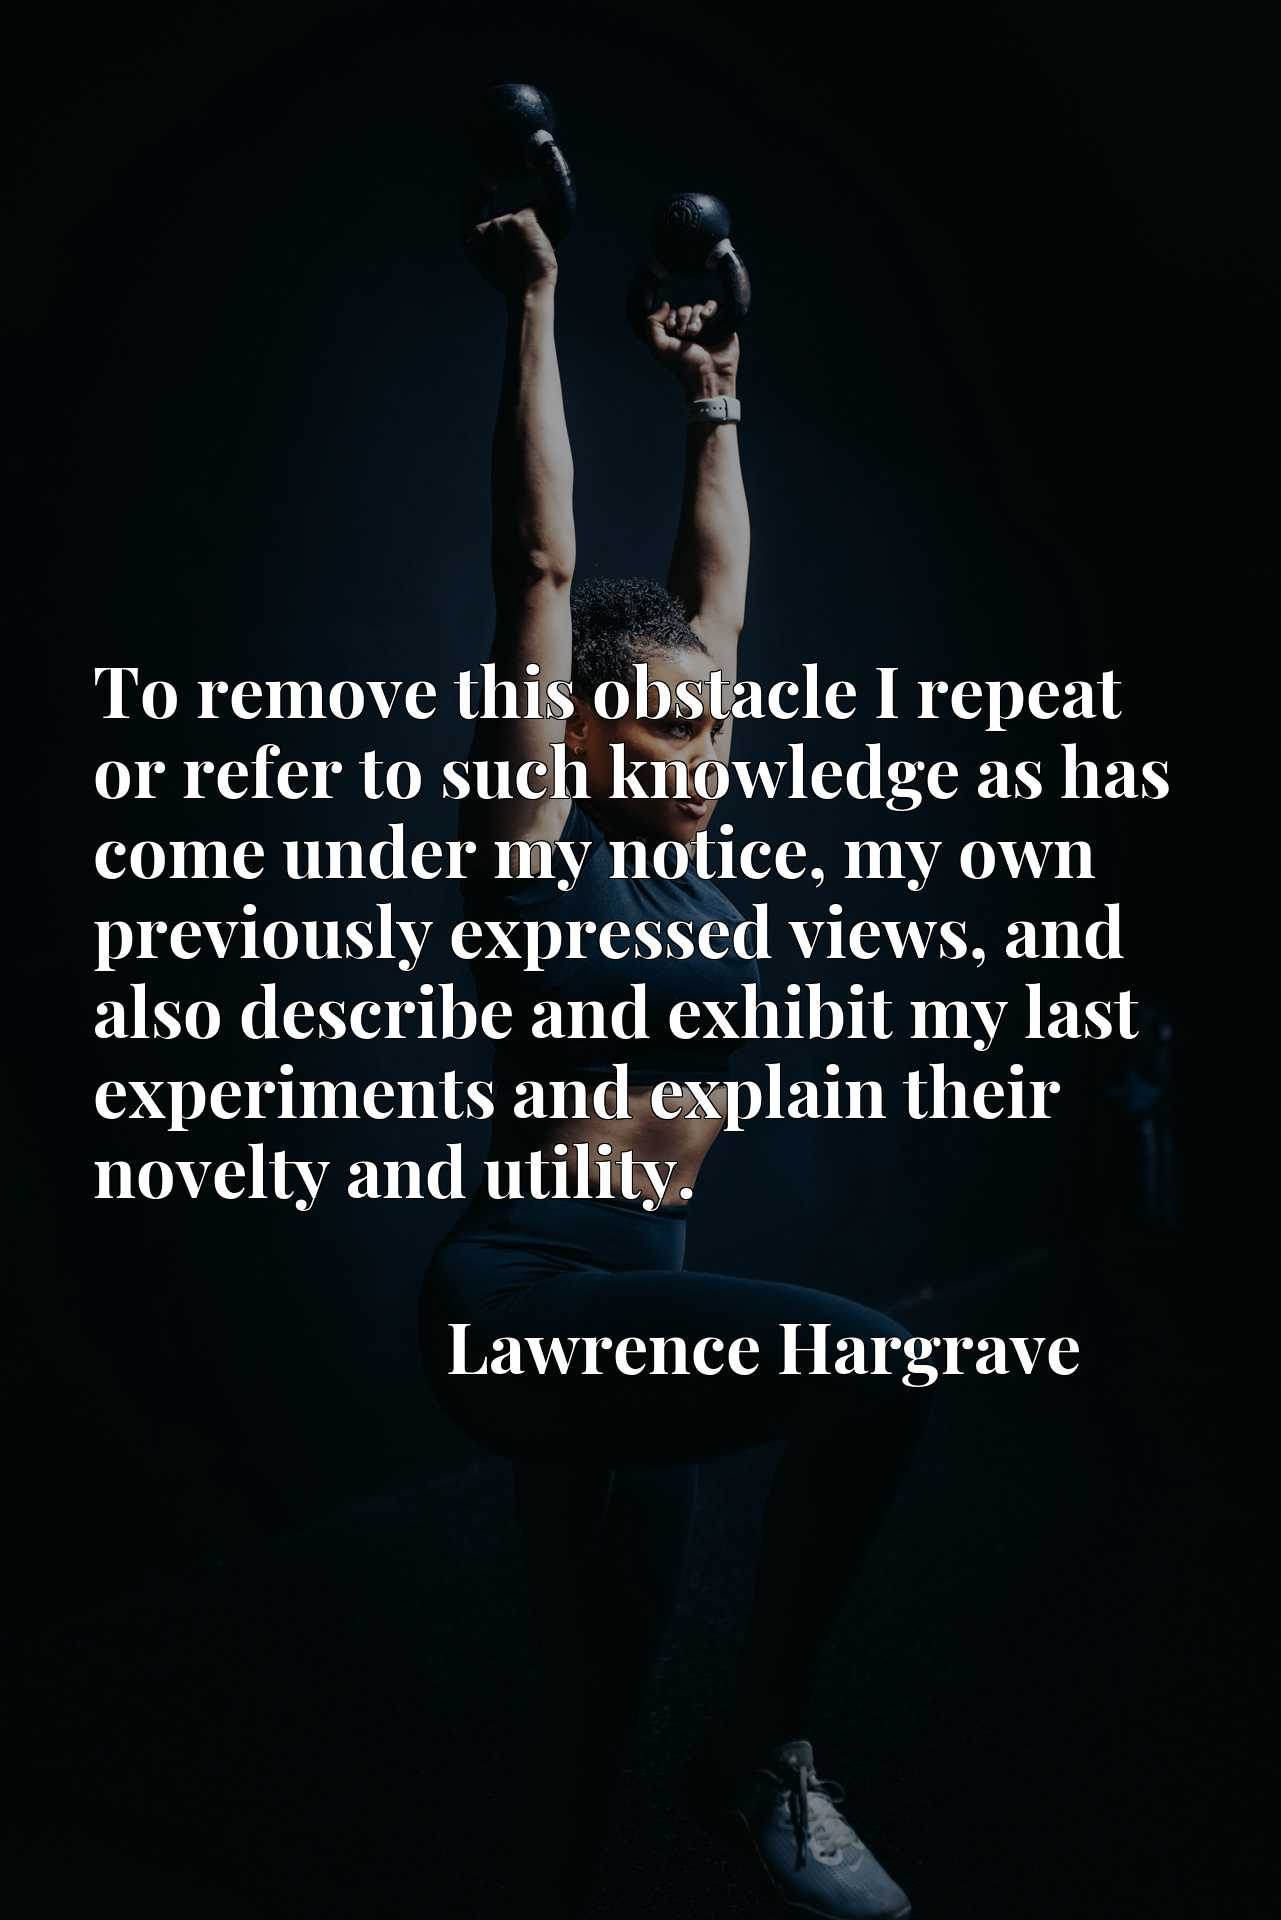 To remove this obstacle I repeat or refer to such knowledge as has come under my notice, my own previously expressed views, and also describe and exhibit my last experiments and explain their novelty and utility.